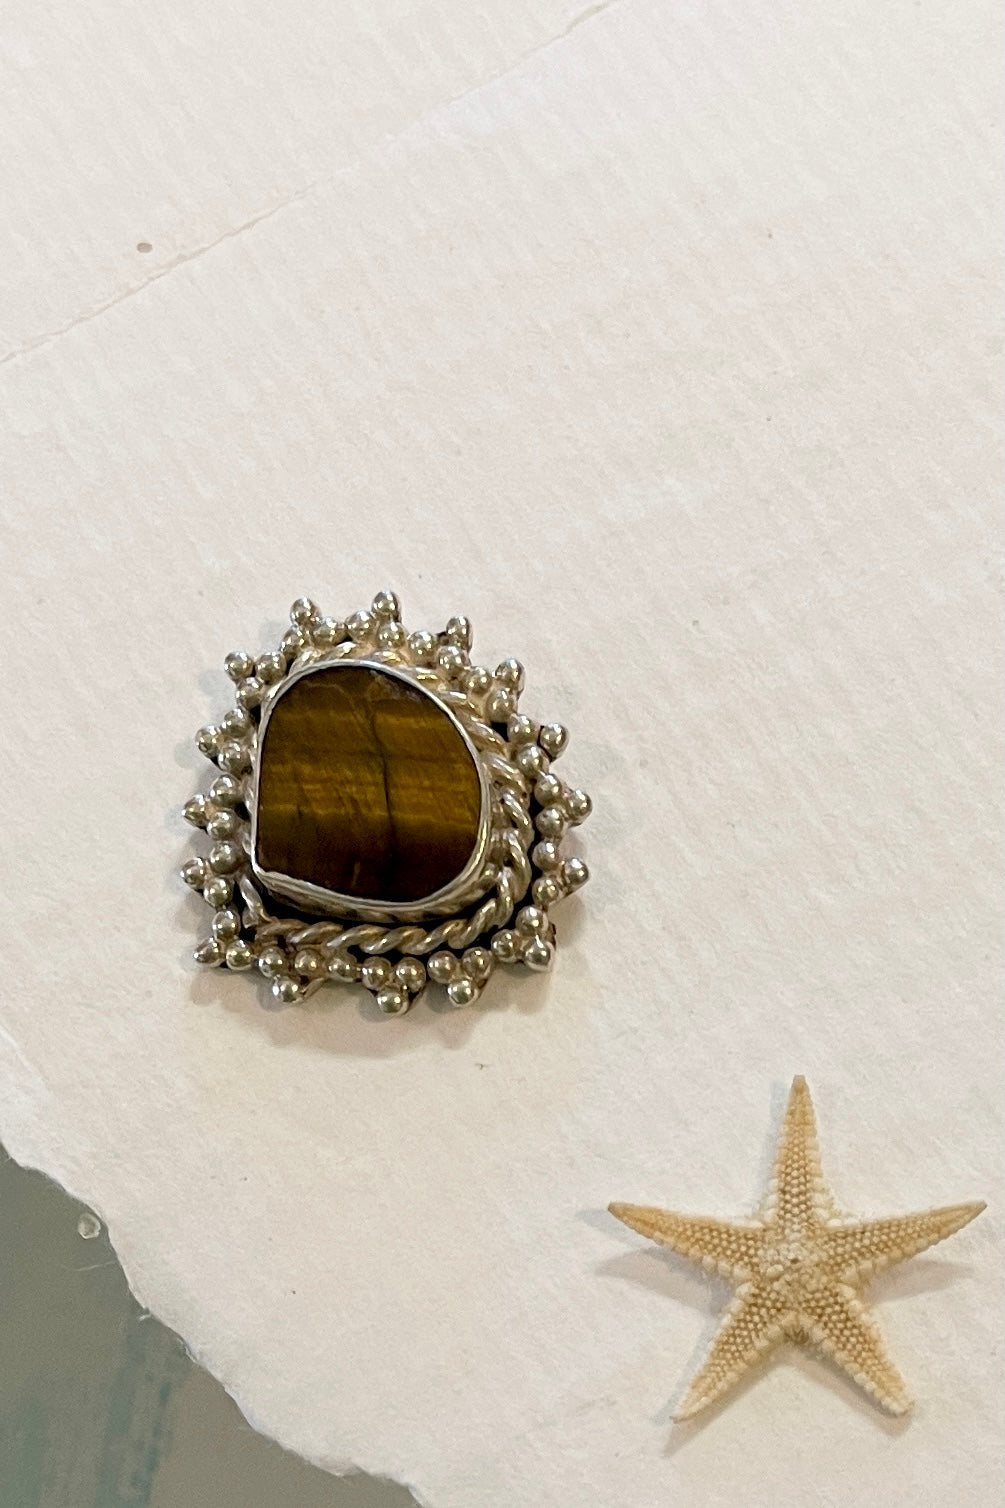 Vintage silver stud earring, made in India of silver with a teardrop shape in Tigers Eye,